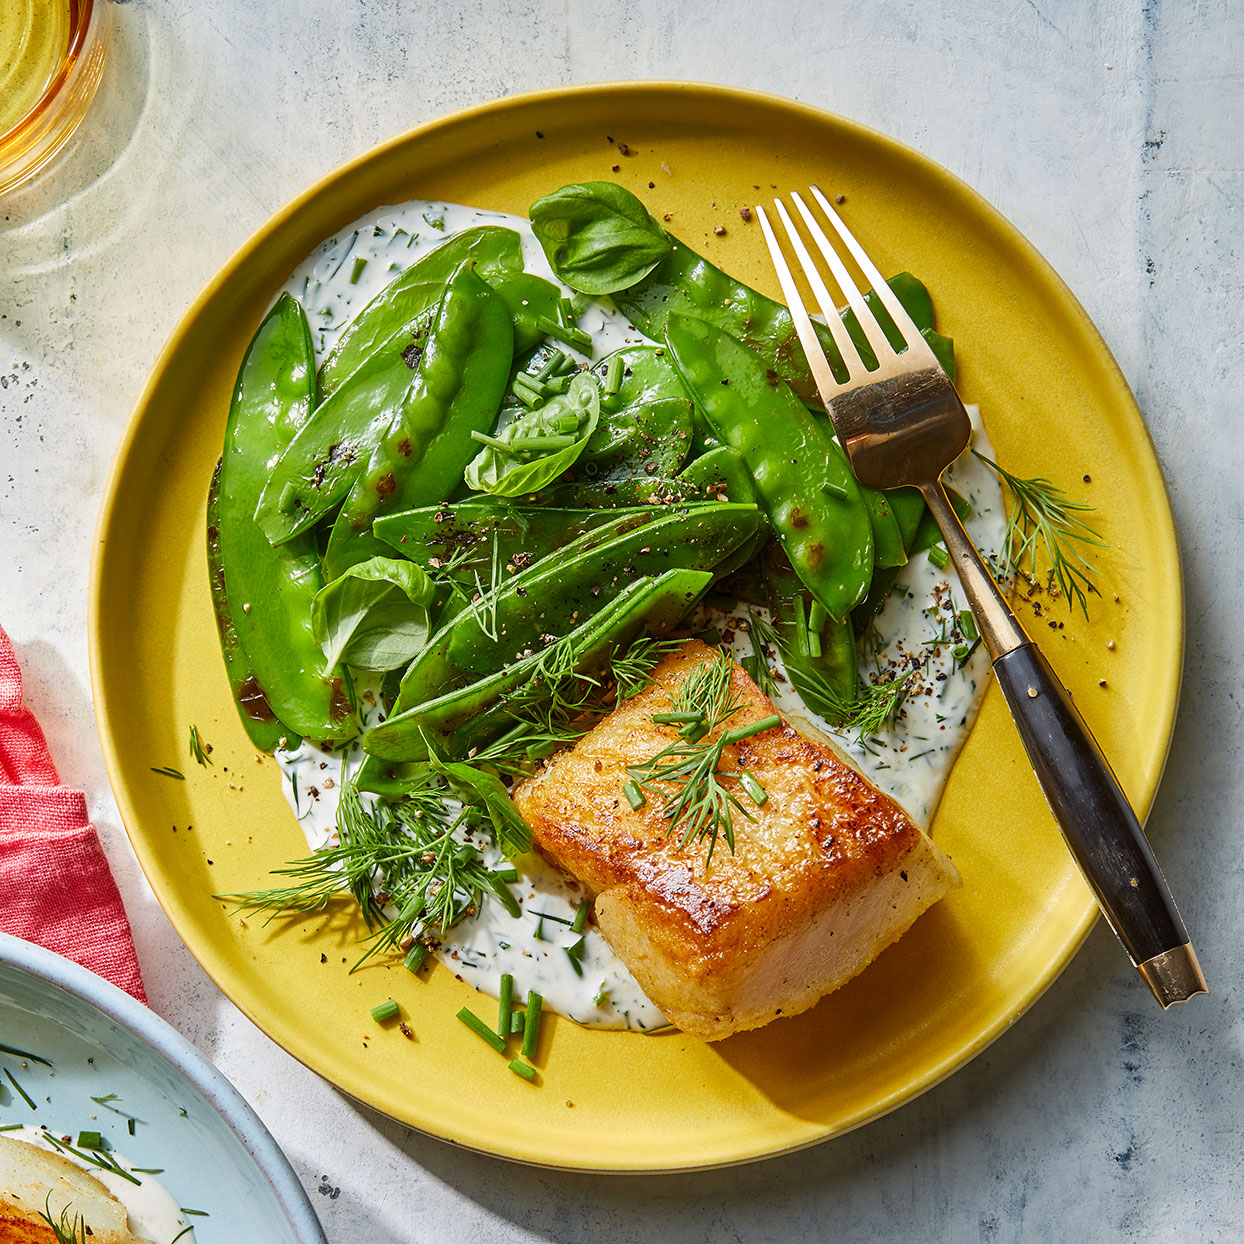 This crispy cod recipe shows you how to make golden fish that's not deep-fried, to put a healthy twist on a classic. Pat it dry and dredge it with a bit of flour before sautéing in a hot pan. Source: EatingWell Magazine, April 2020